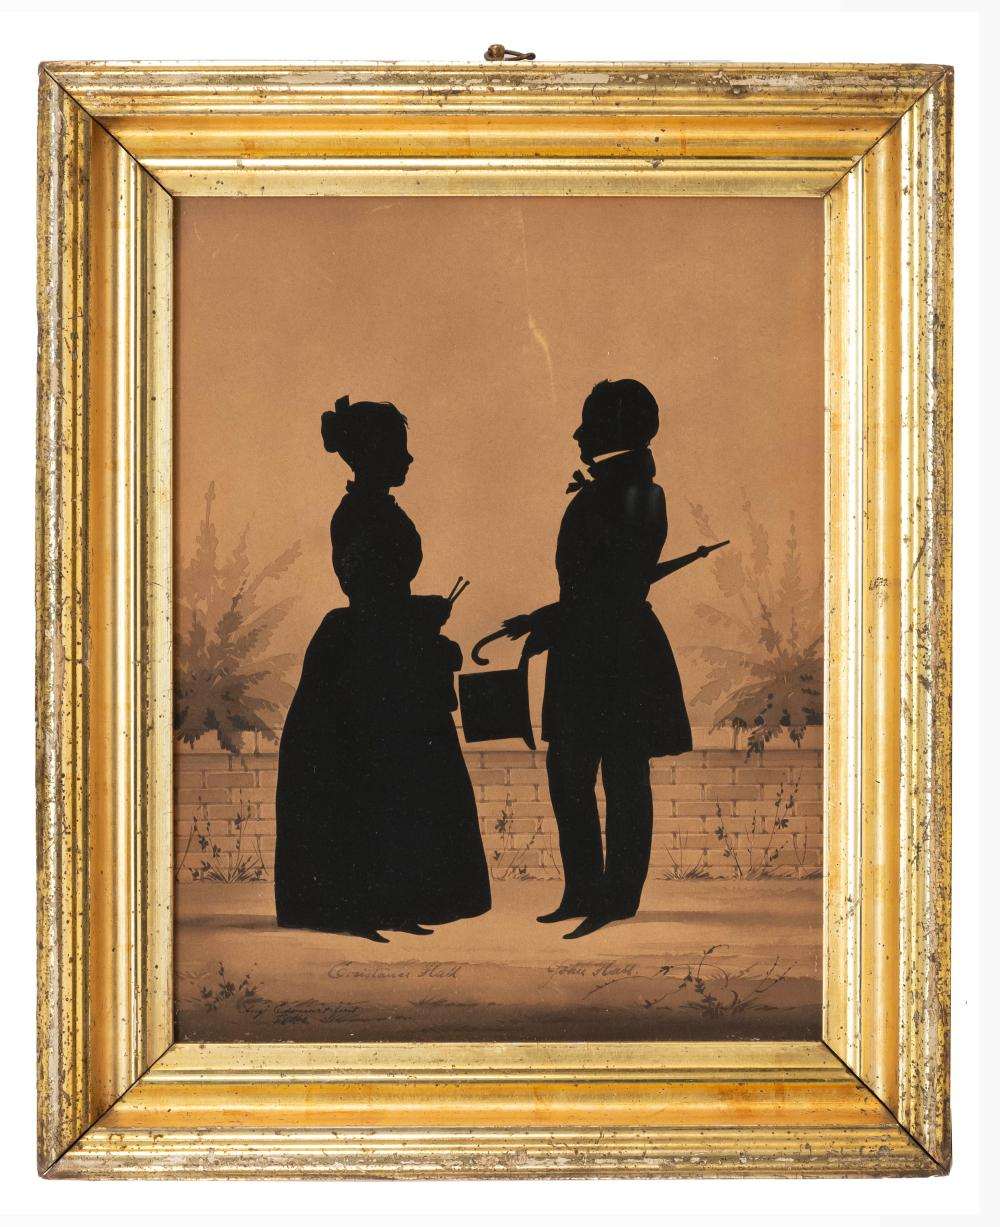 AUGUSTE EDOUART, Louisiana/France, 1789-1861, Cut paper silhouette portrait of Constance and John Hall with watercolor background.,...